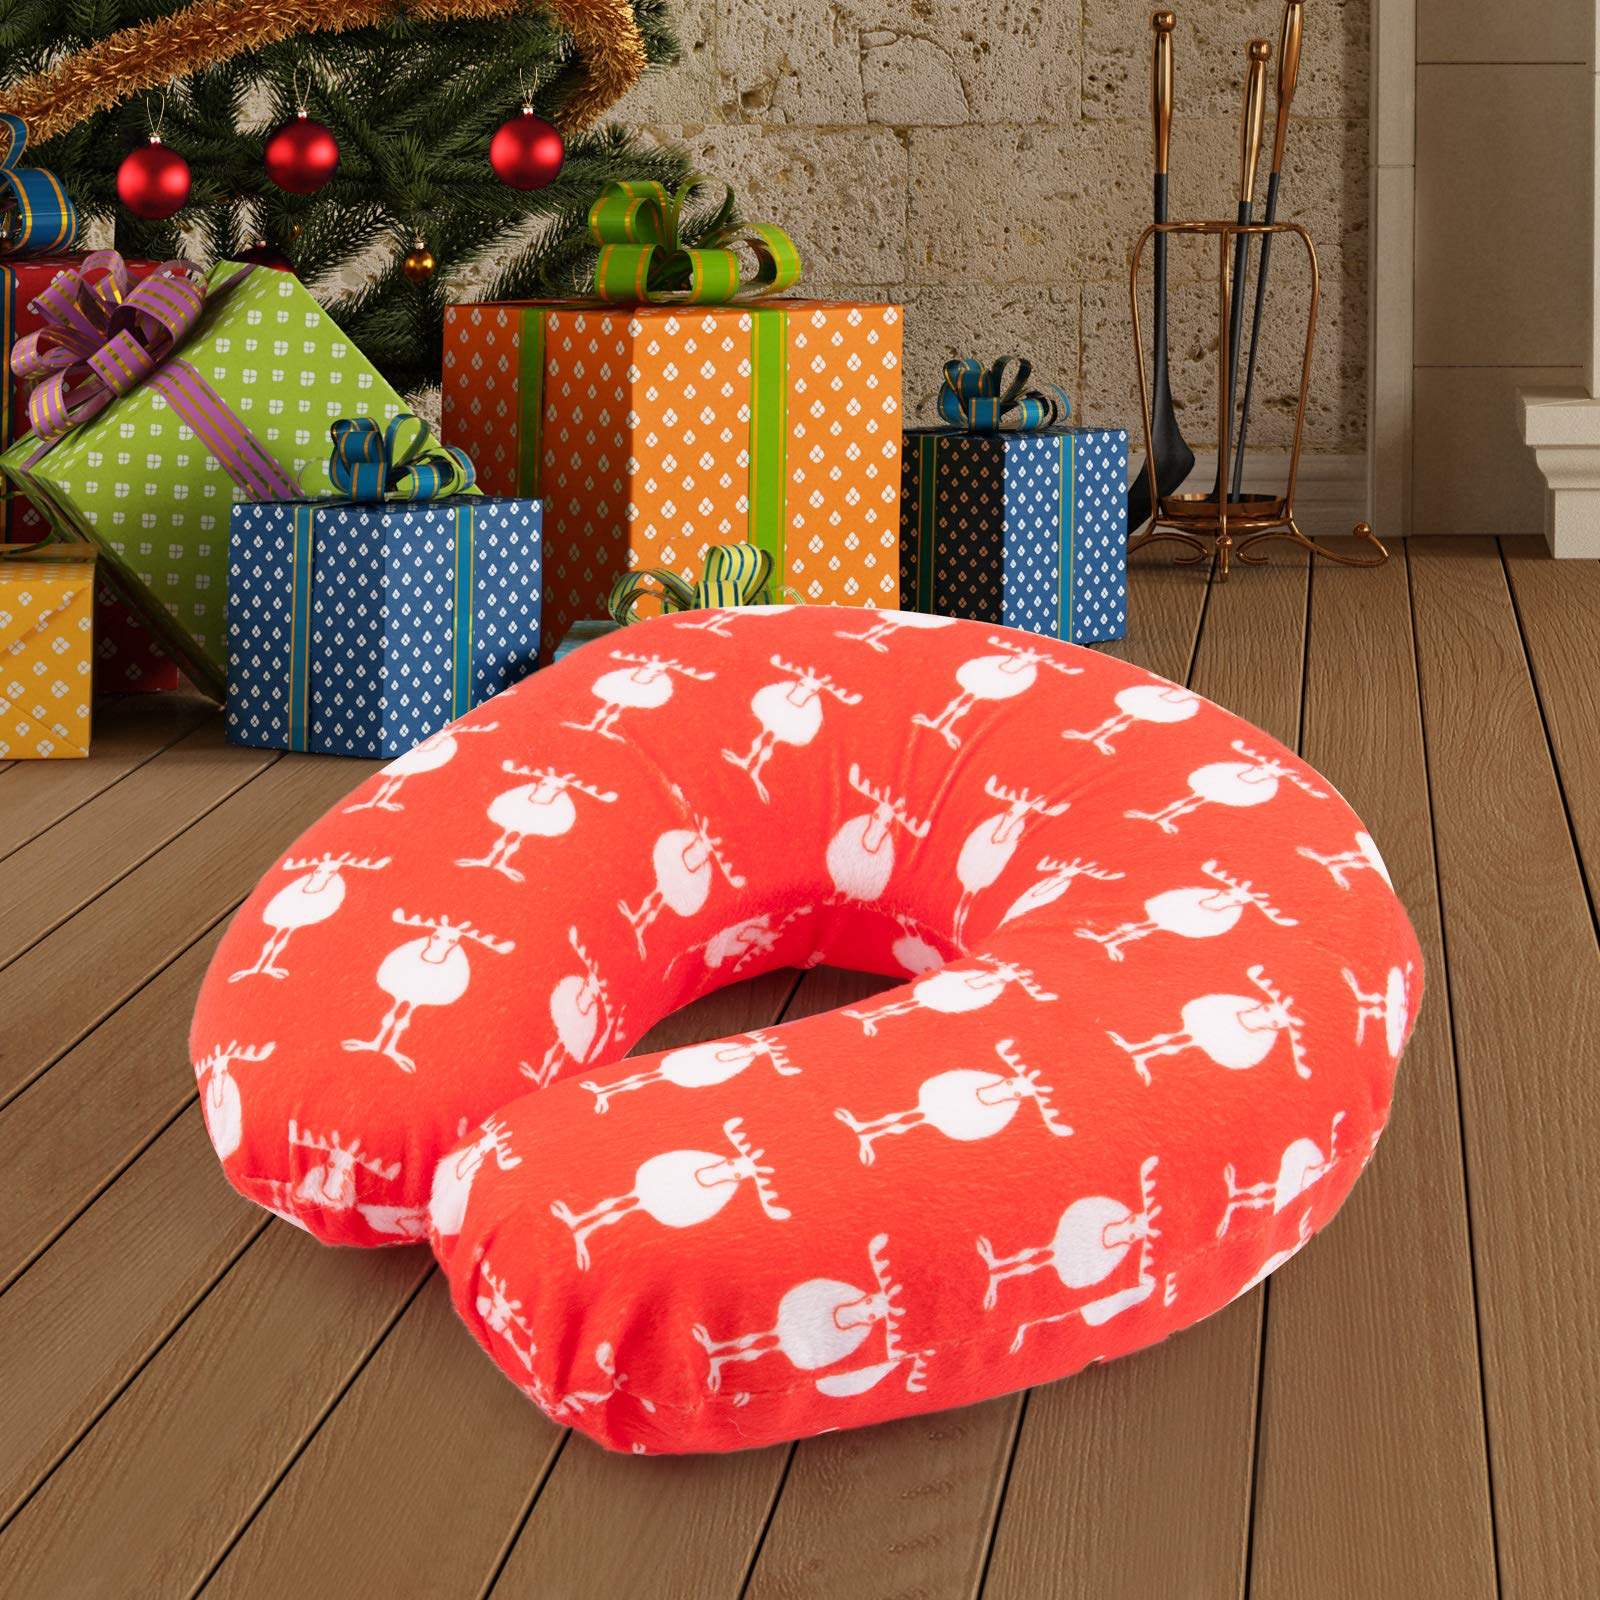 Moonen Travel Pillow Memory Foam Neck Pillow for Family and Friends with Removable and Washable Microfiber Cover Head Support on a Train Airplane Car Bus